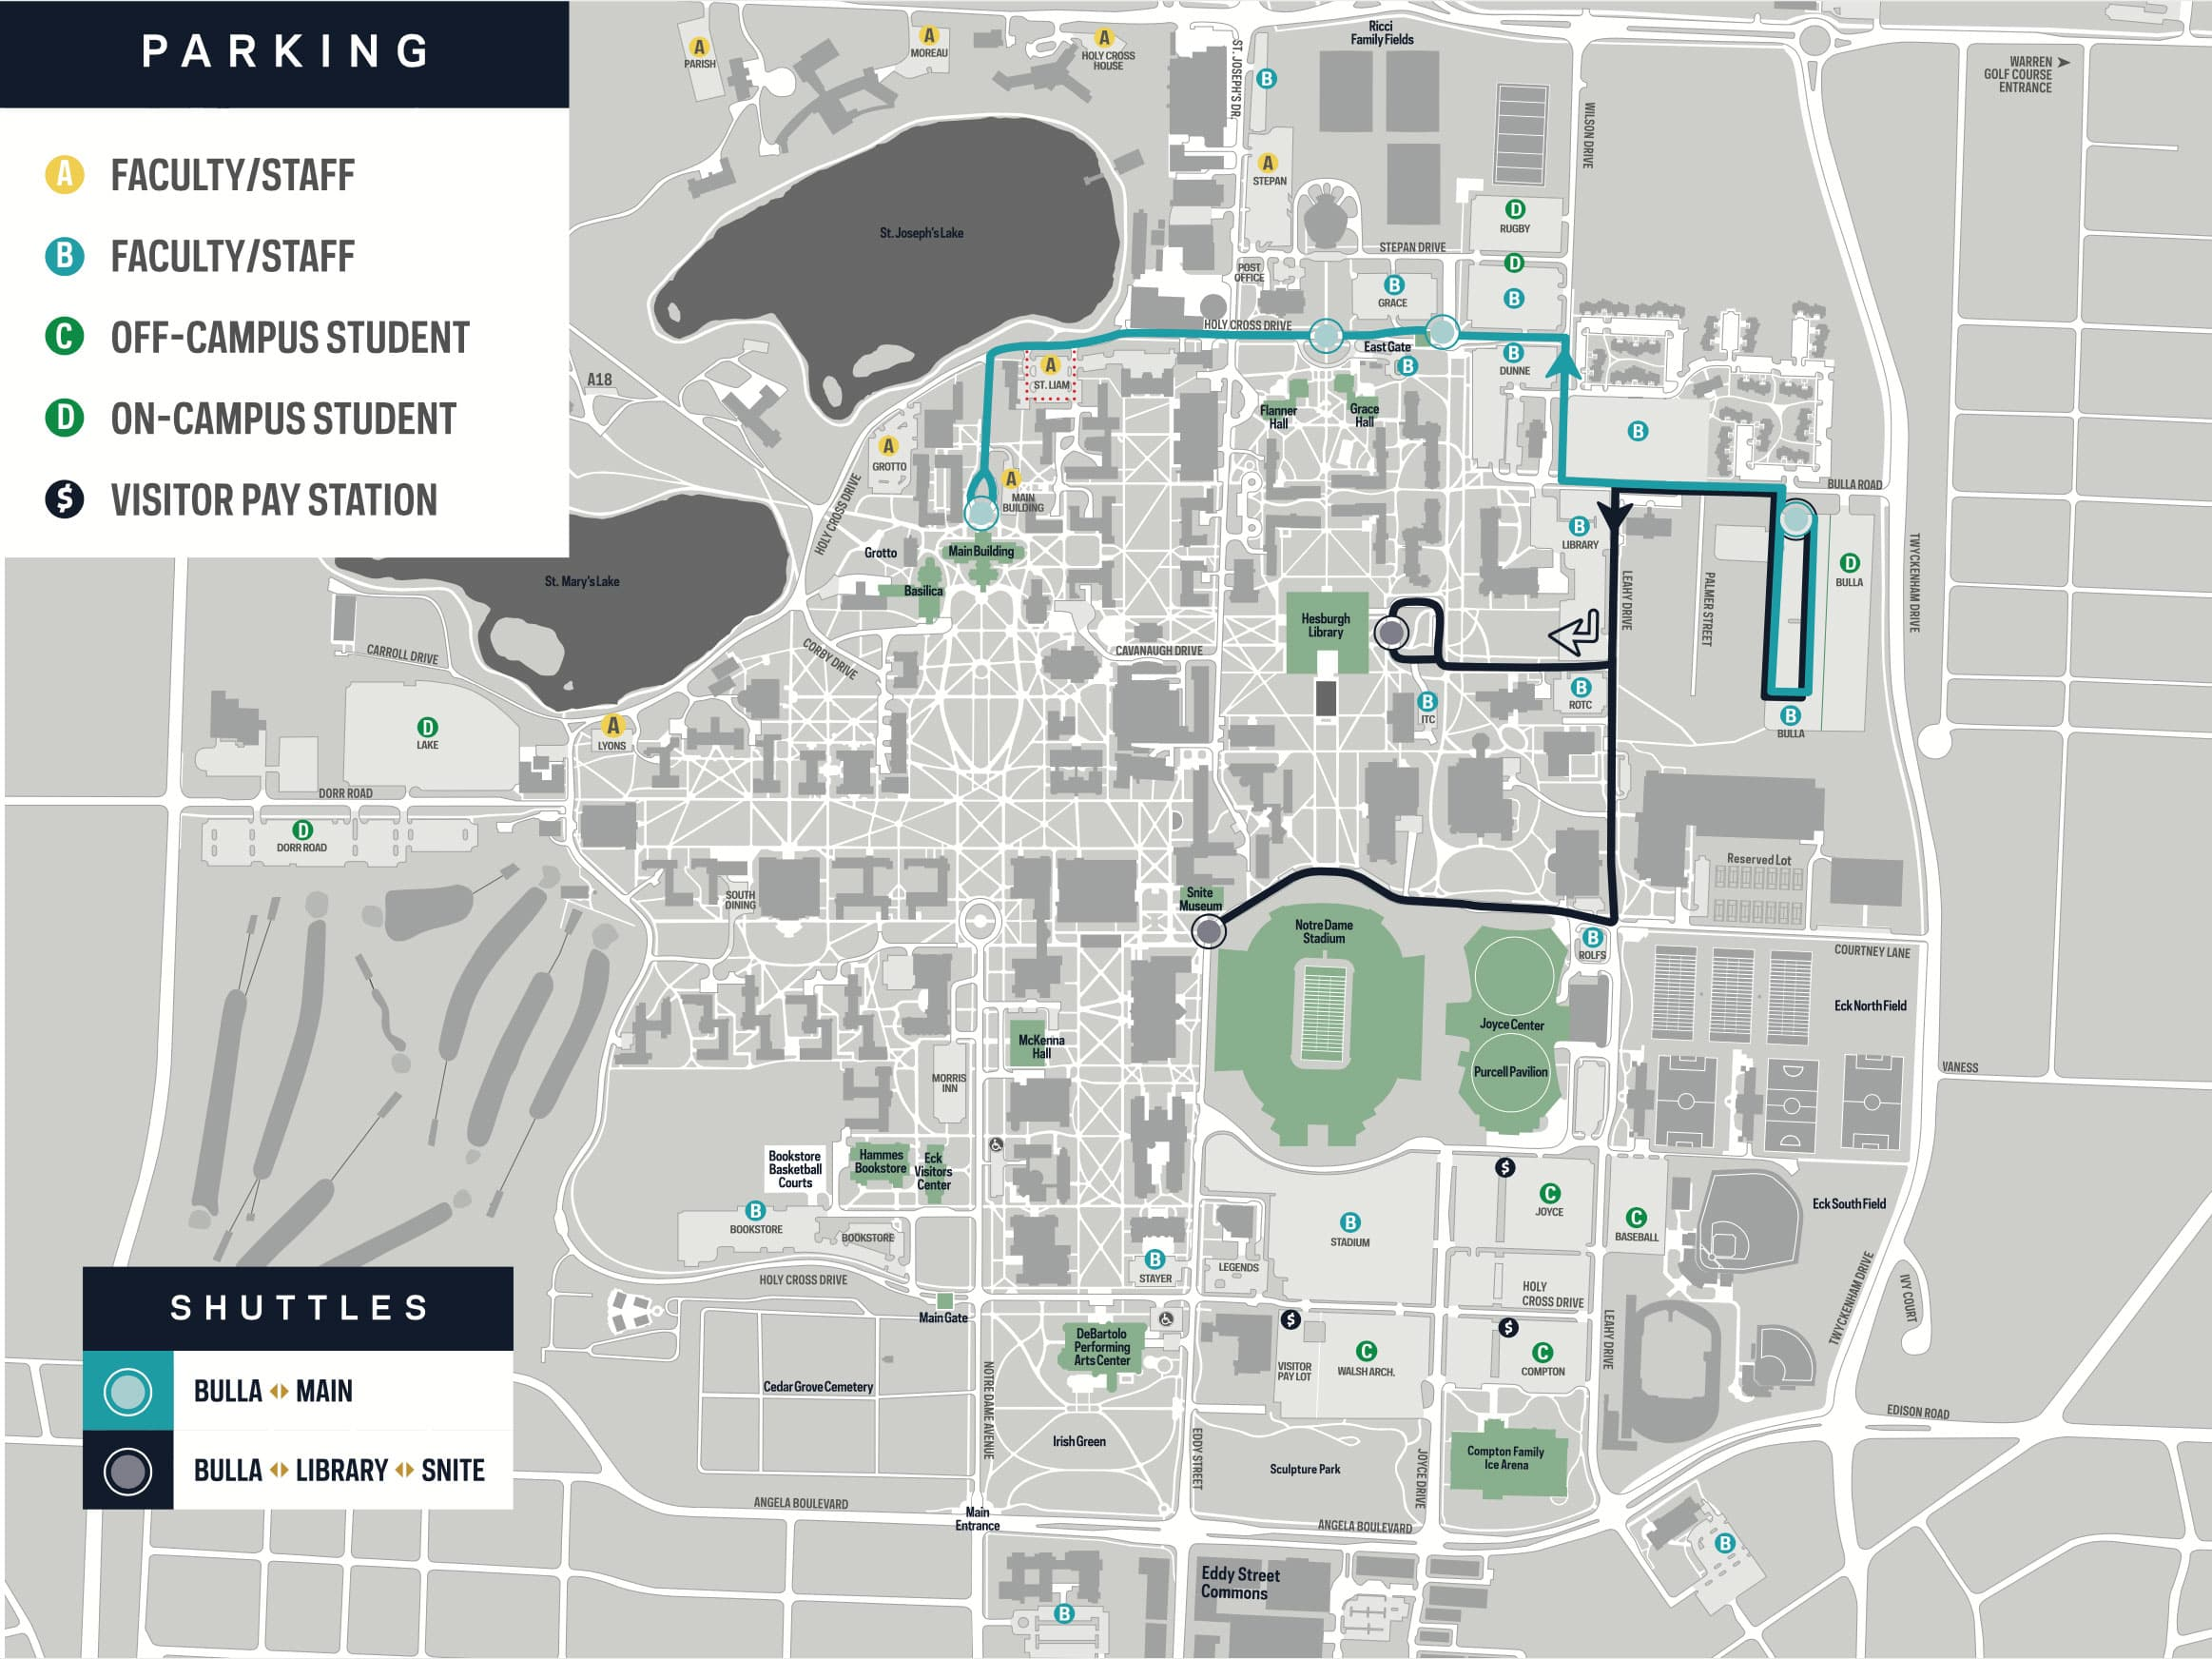 Notre Dame Parking Map Parking and Shuttle Maps | Parking & Traffic | Notre Dame Police